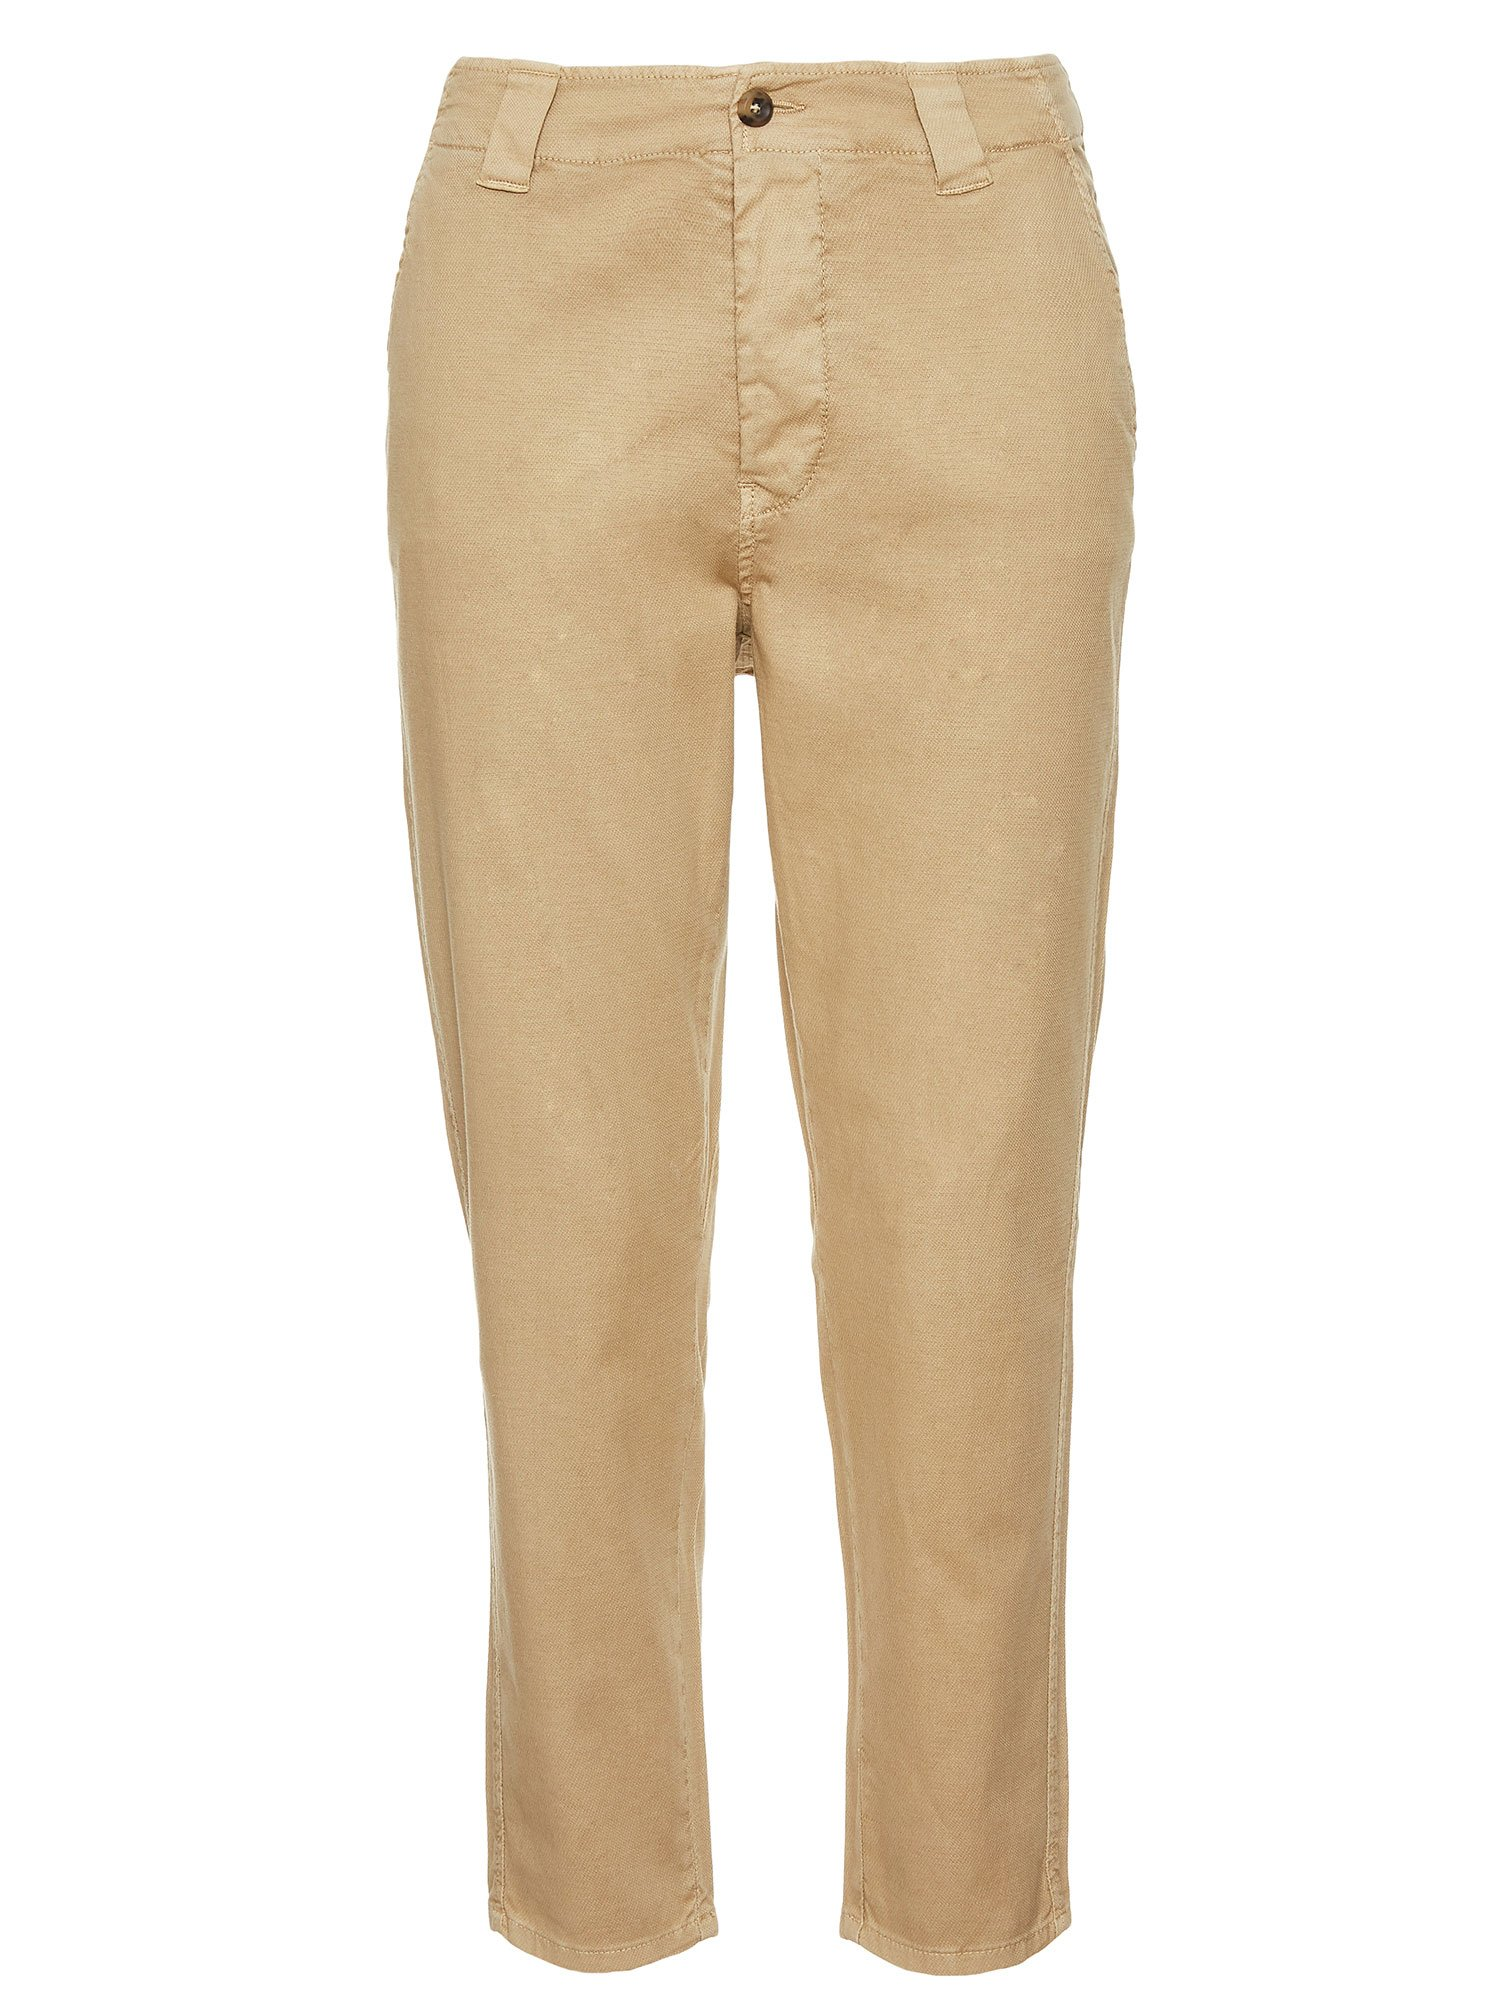 Blauer - LONG COTTON DOBBY WEAVE TROUSERS - Biscuit - Blauer